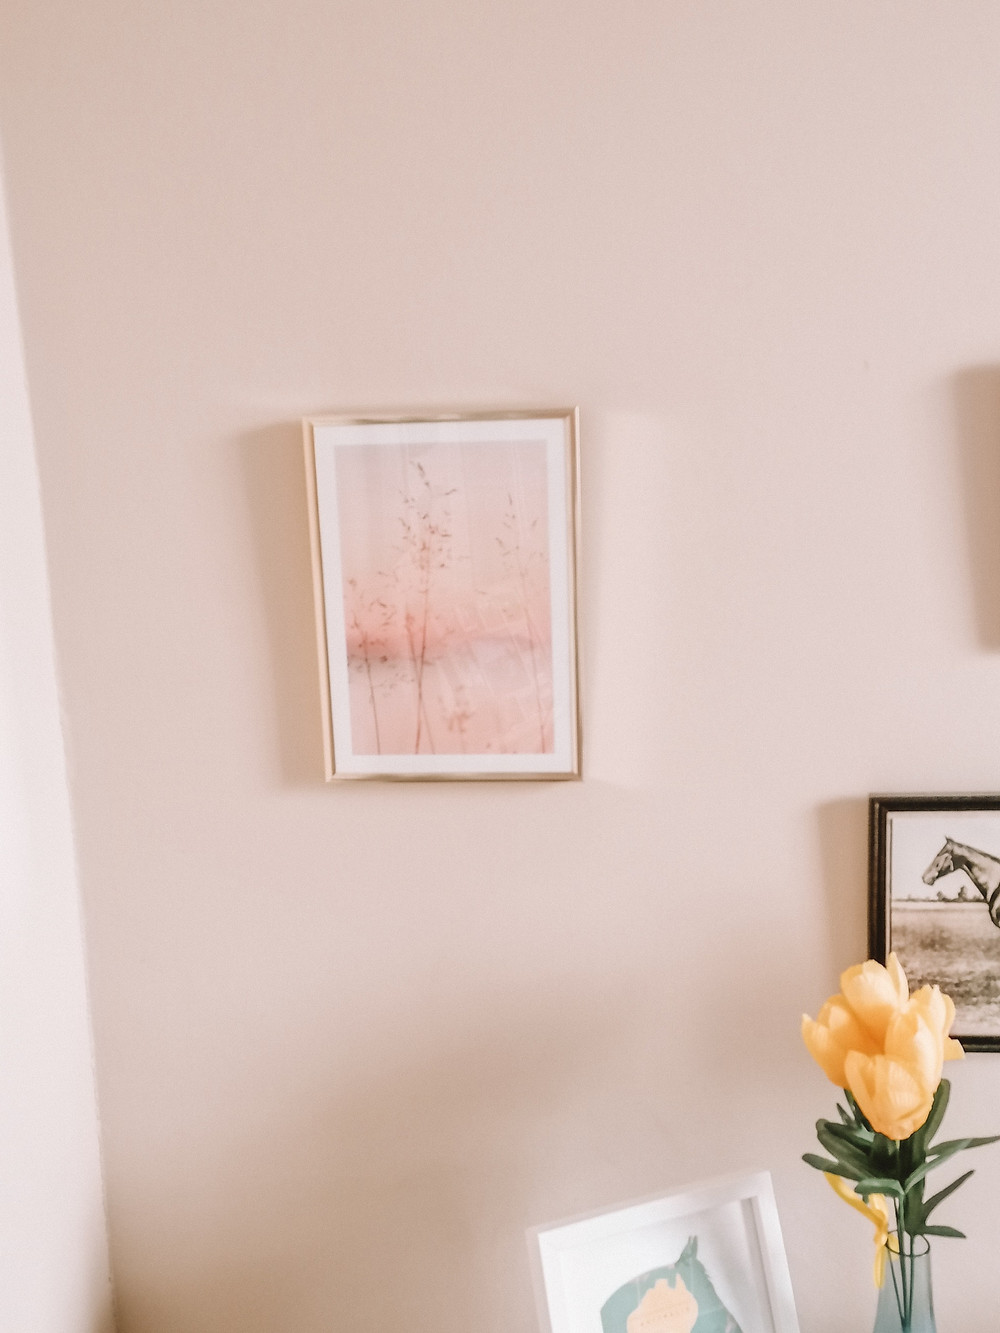 photo shows a sunset picture on a wall in a frame